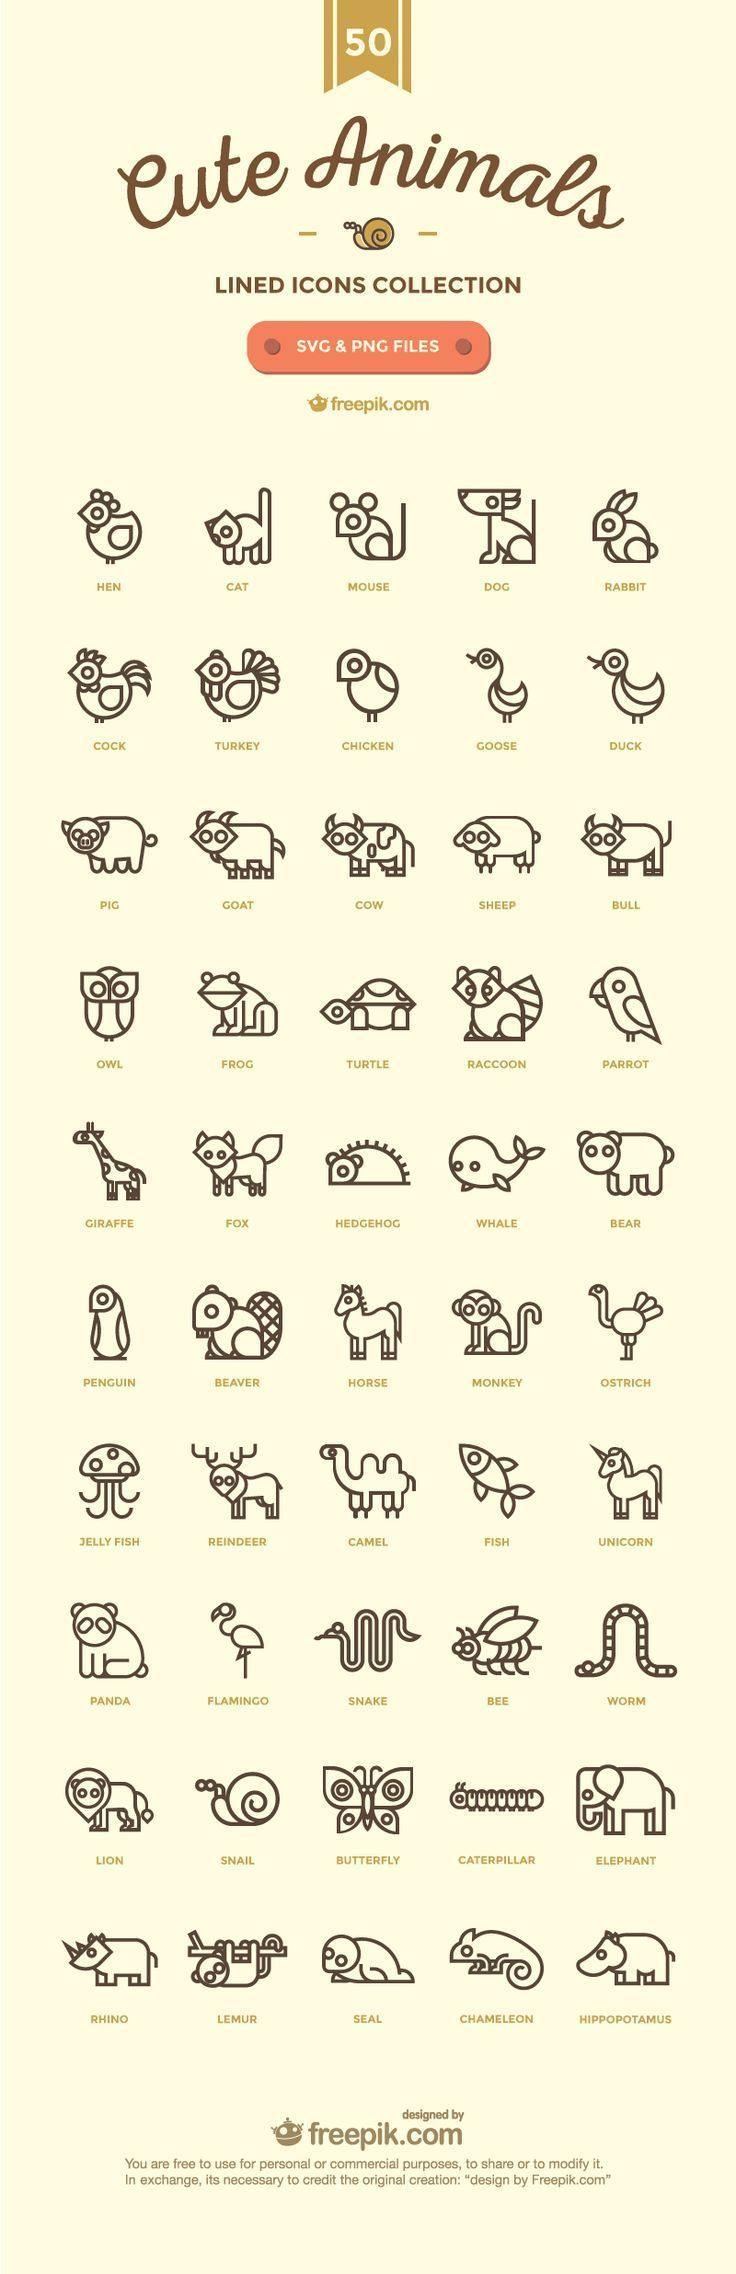 50 Free Cute Linear Animal Icons – #Animal #cute #Free #icon #Icons #Linear